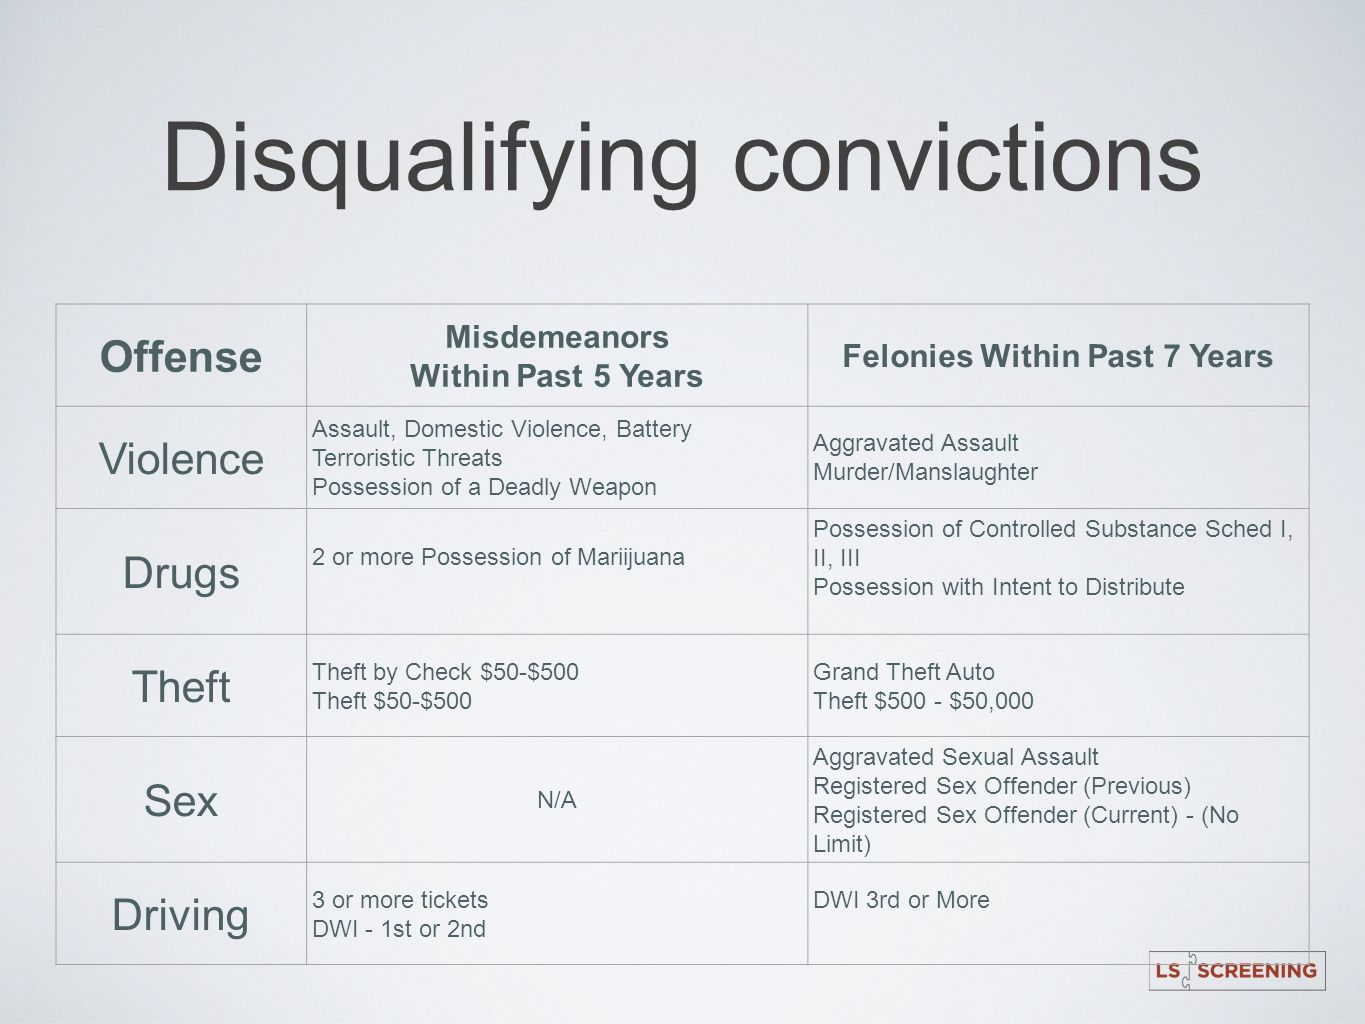 Disqualifying convictions